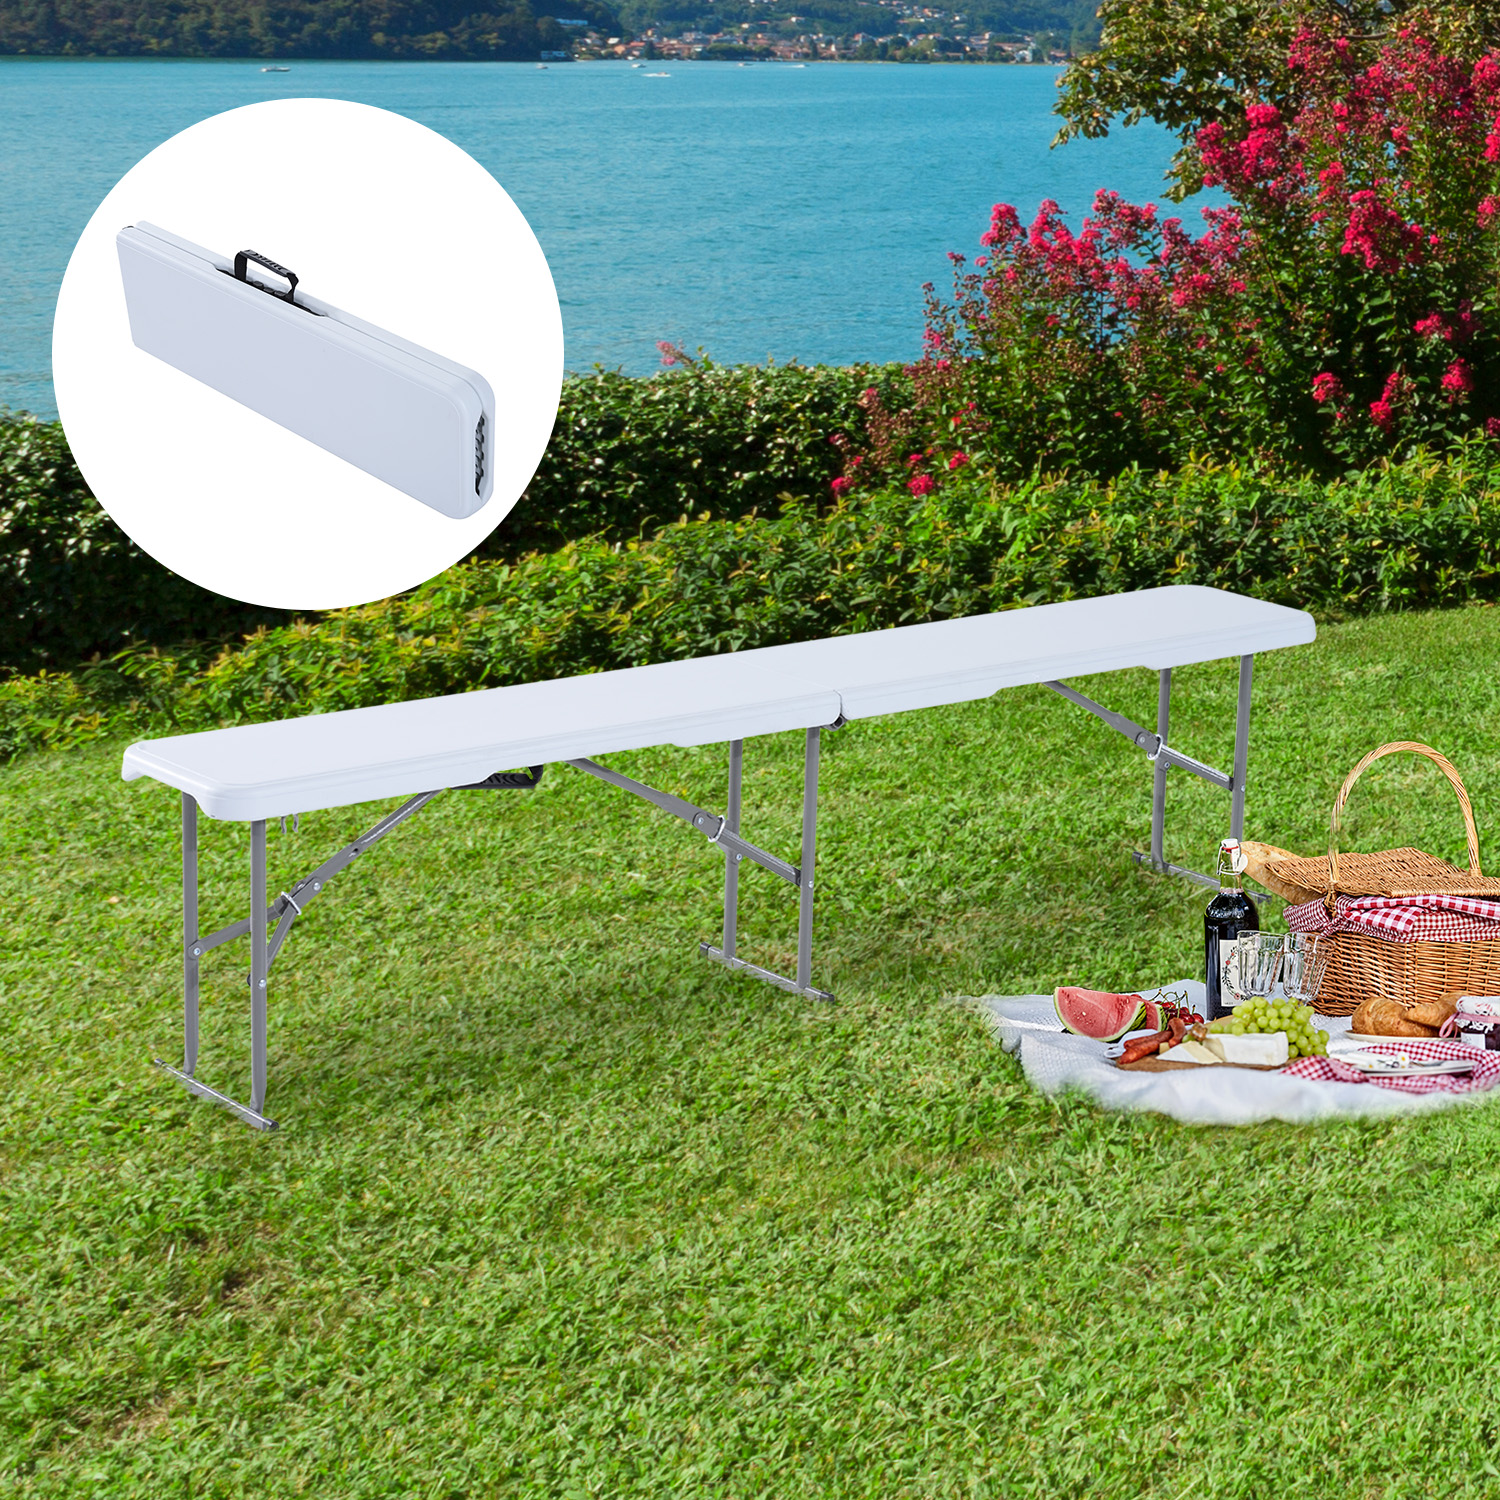 Image of CAD $68.99 Outsunny 6' Long Folding Bench Outdoor Camping Picnic Garden Party Seat / 6ft Canada 46655326959